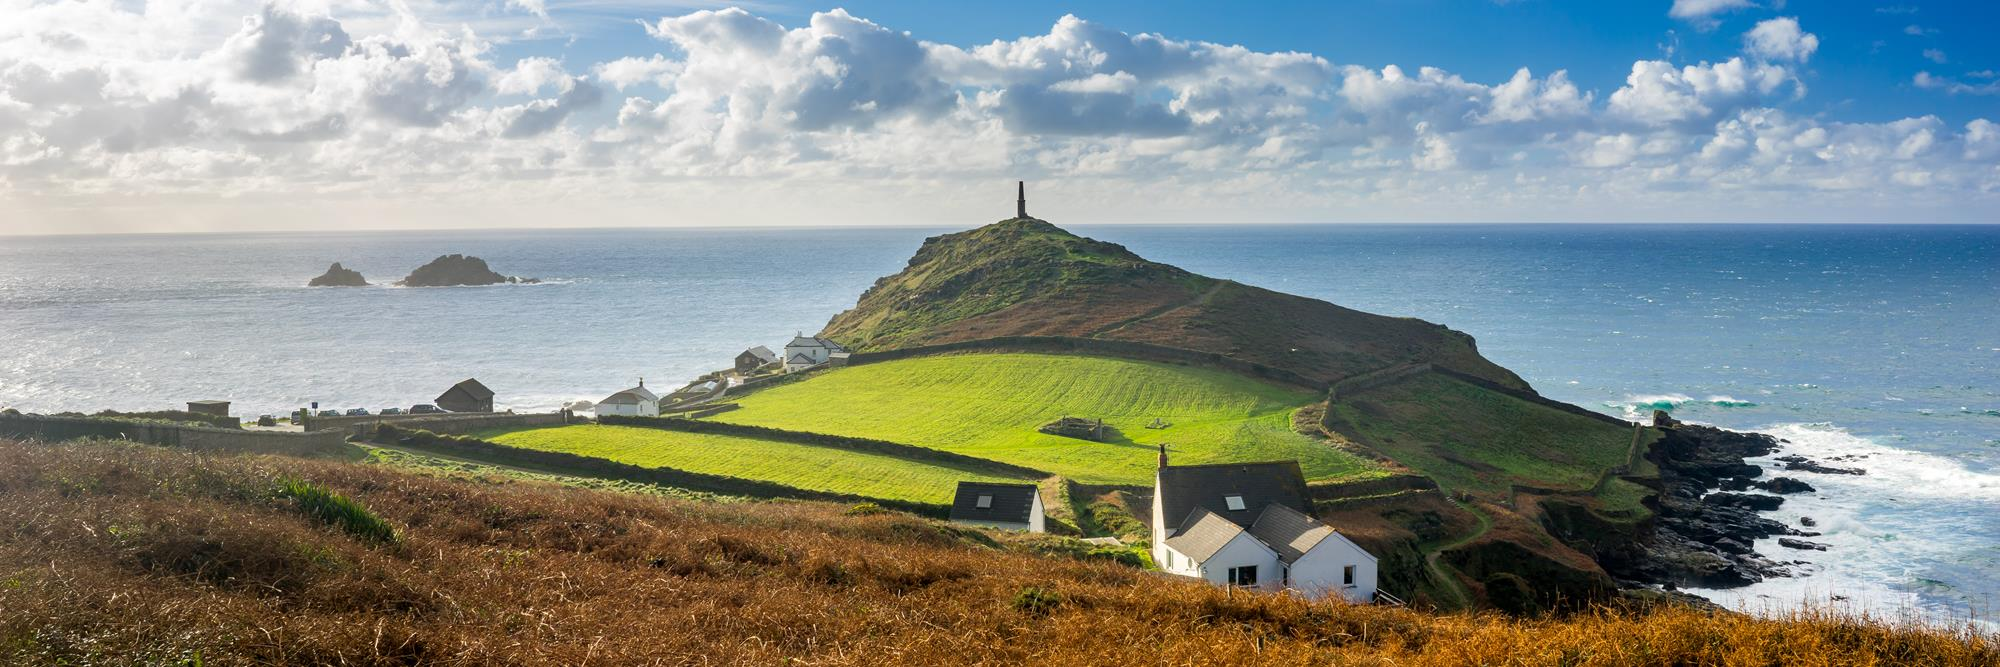 The_headland_at_Cape_Cornwall_part_of_th